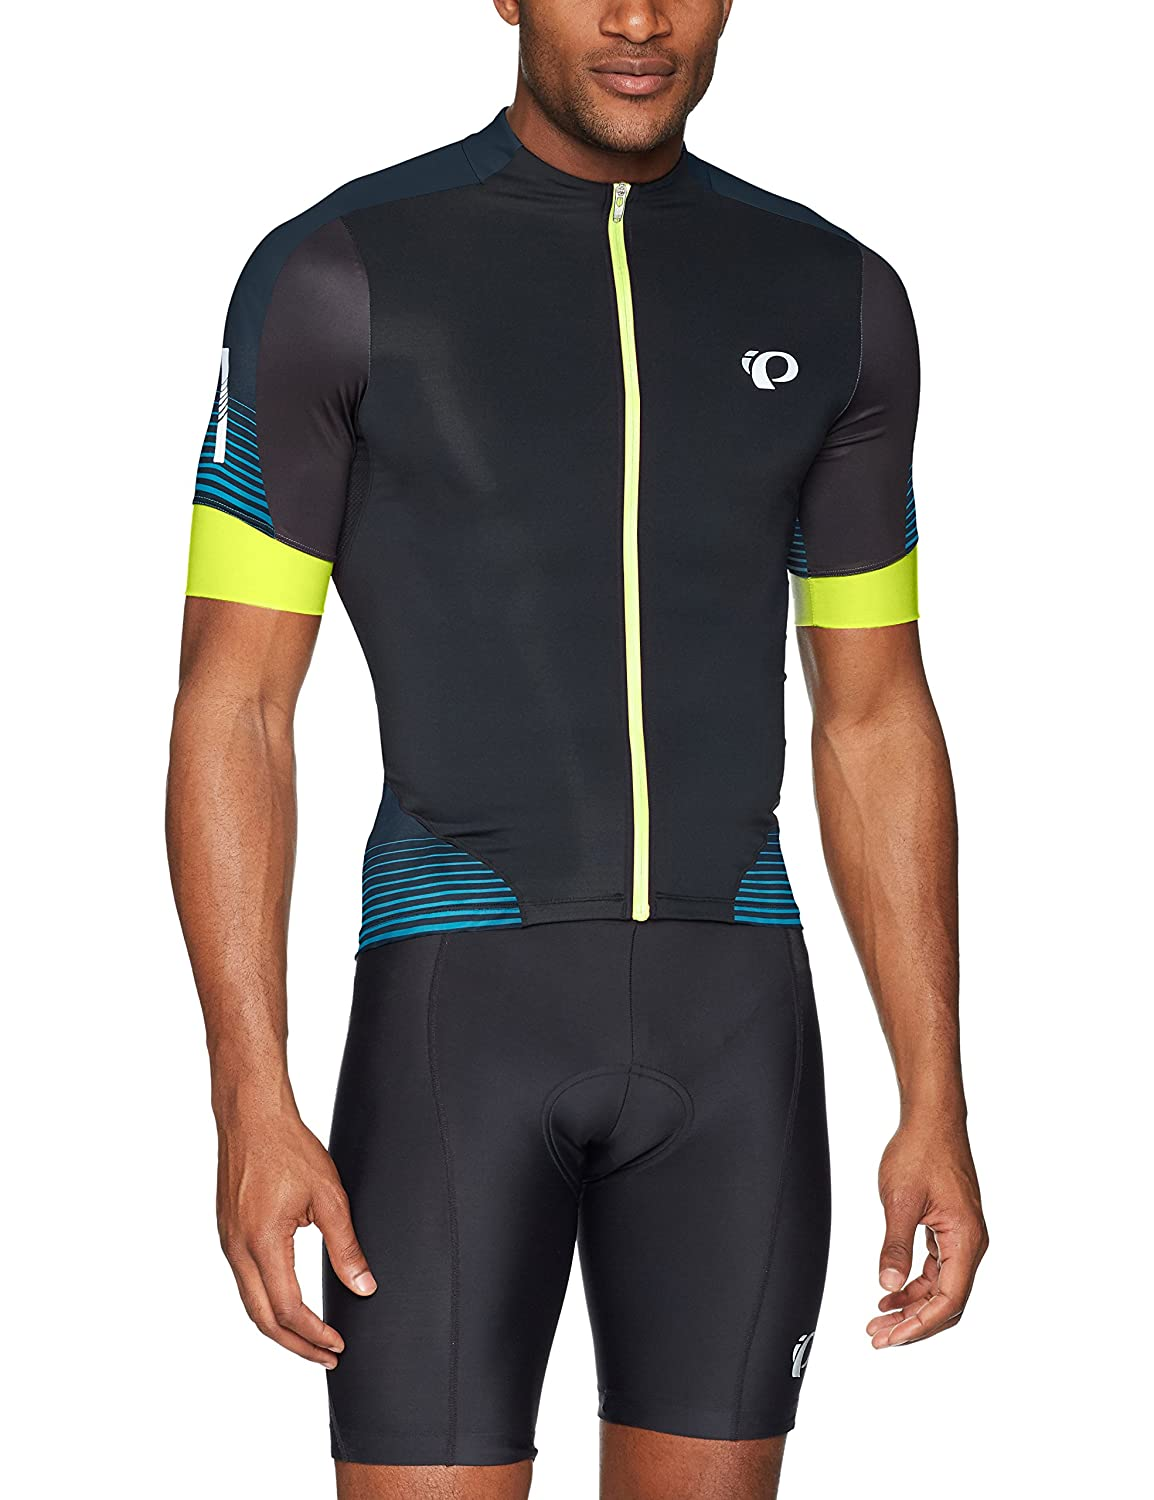 Pearl Pursuit Izumi Pro Pursuit Pearl Leader Jersey 4e2323